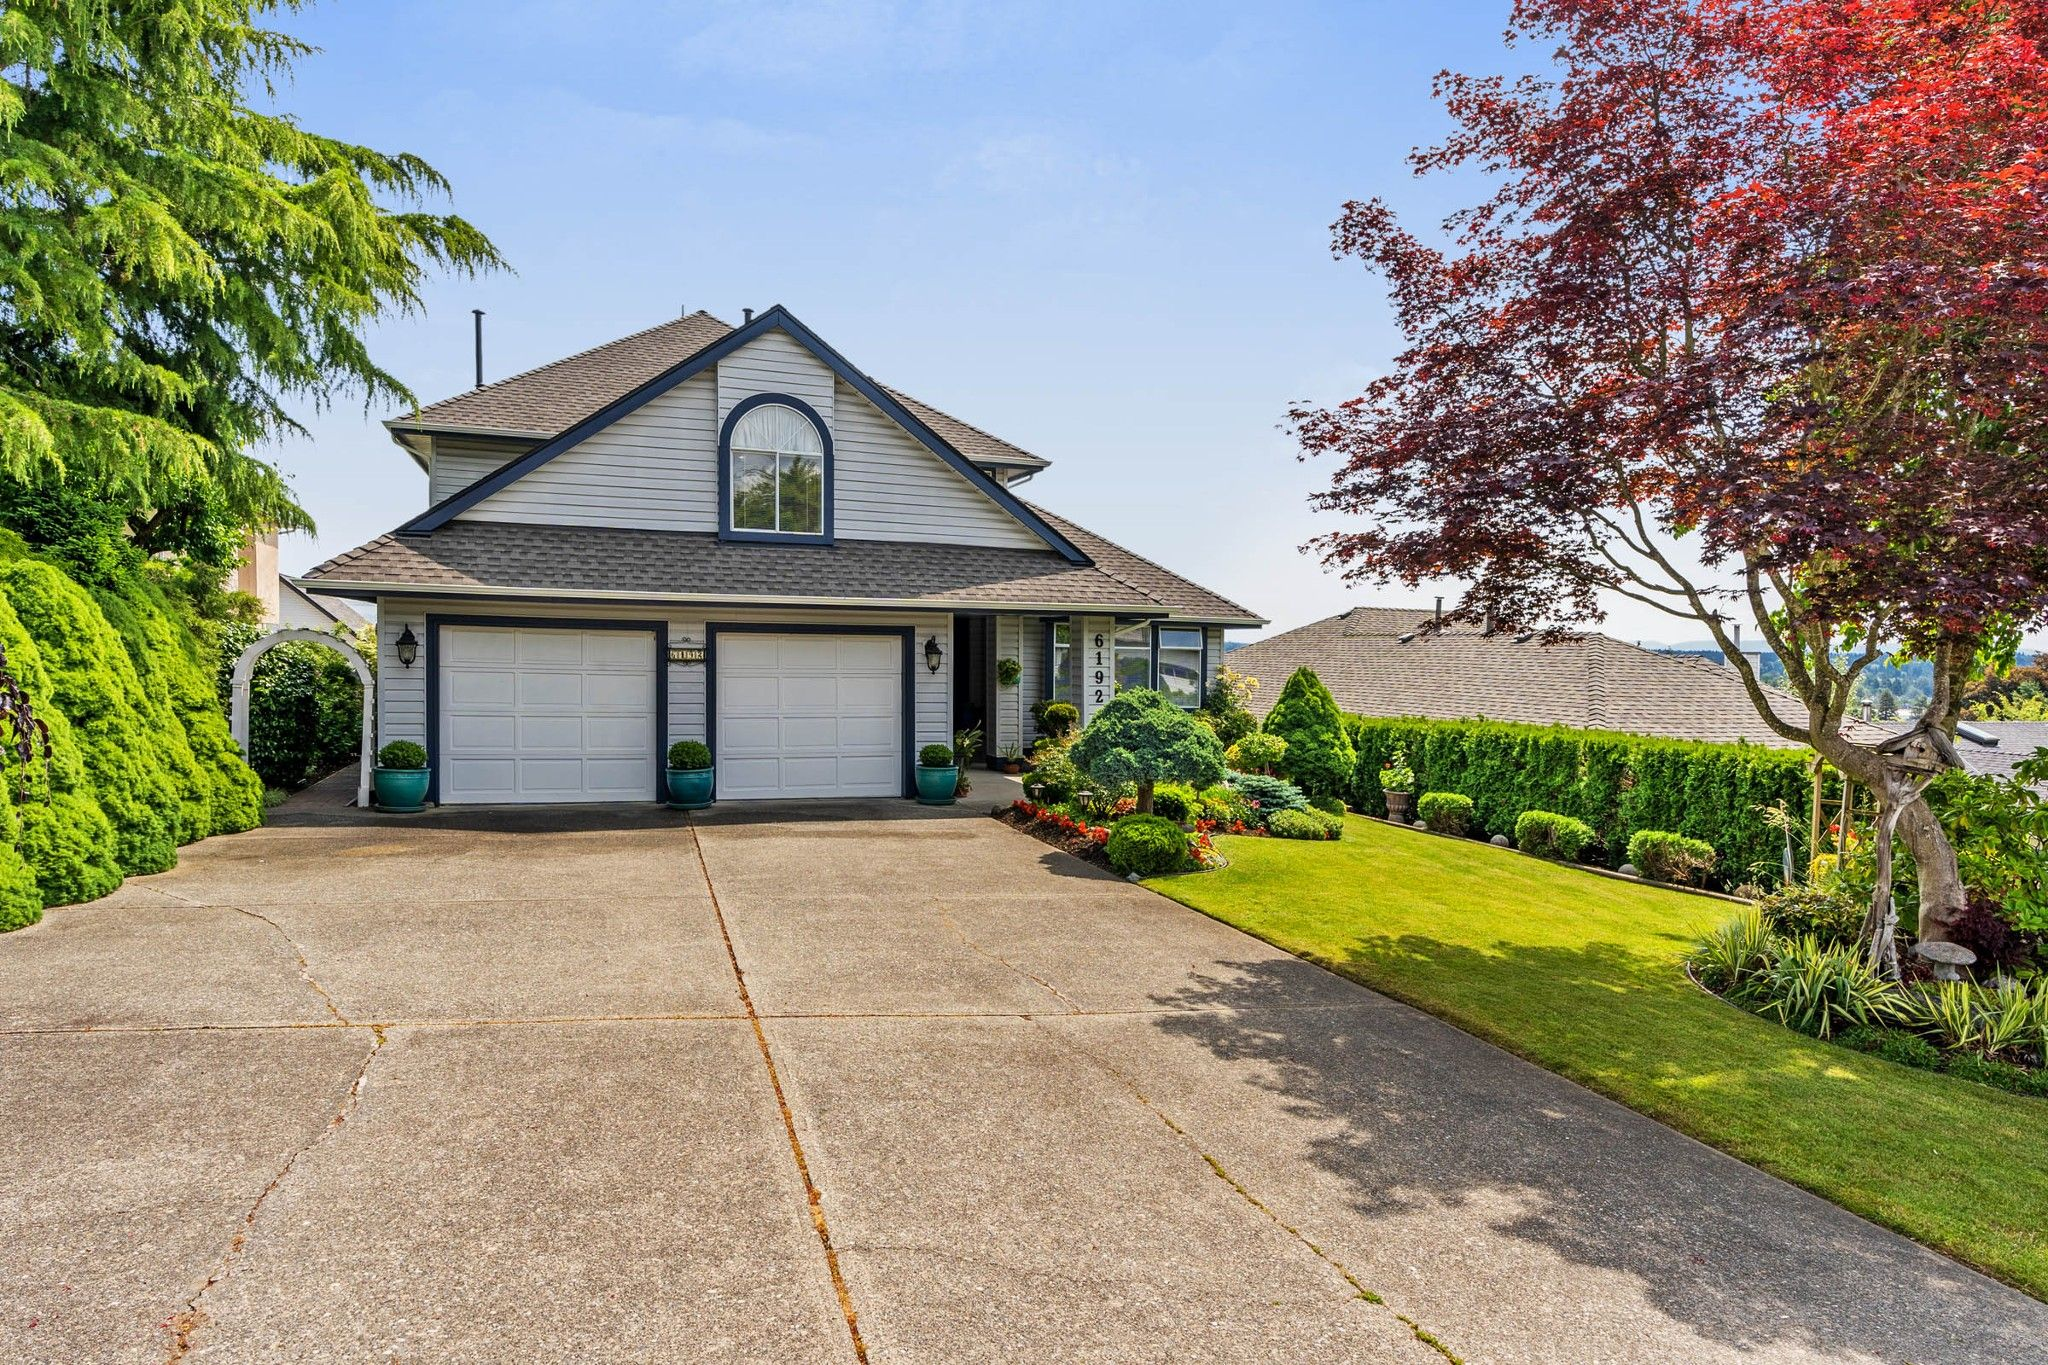 Photo 2: Photos: 6192 191A Street in Surrey: Cloverdale BC House for sale (Cloverdale)  : MLS®# R2279041